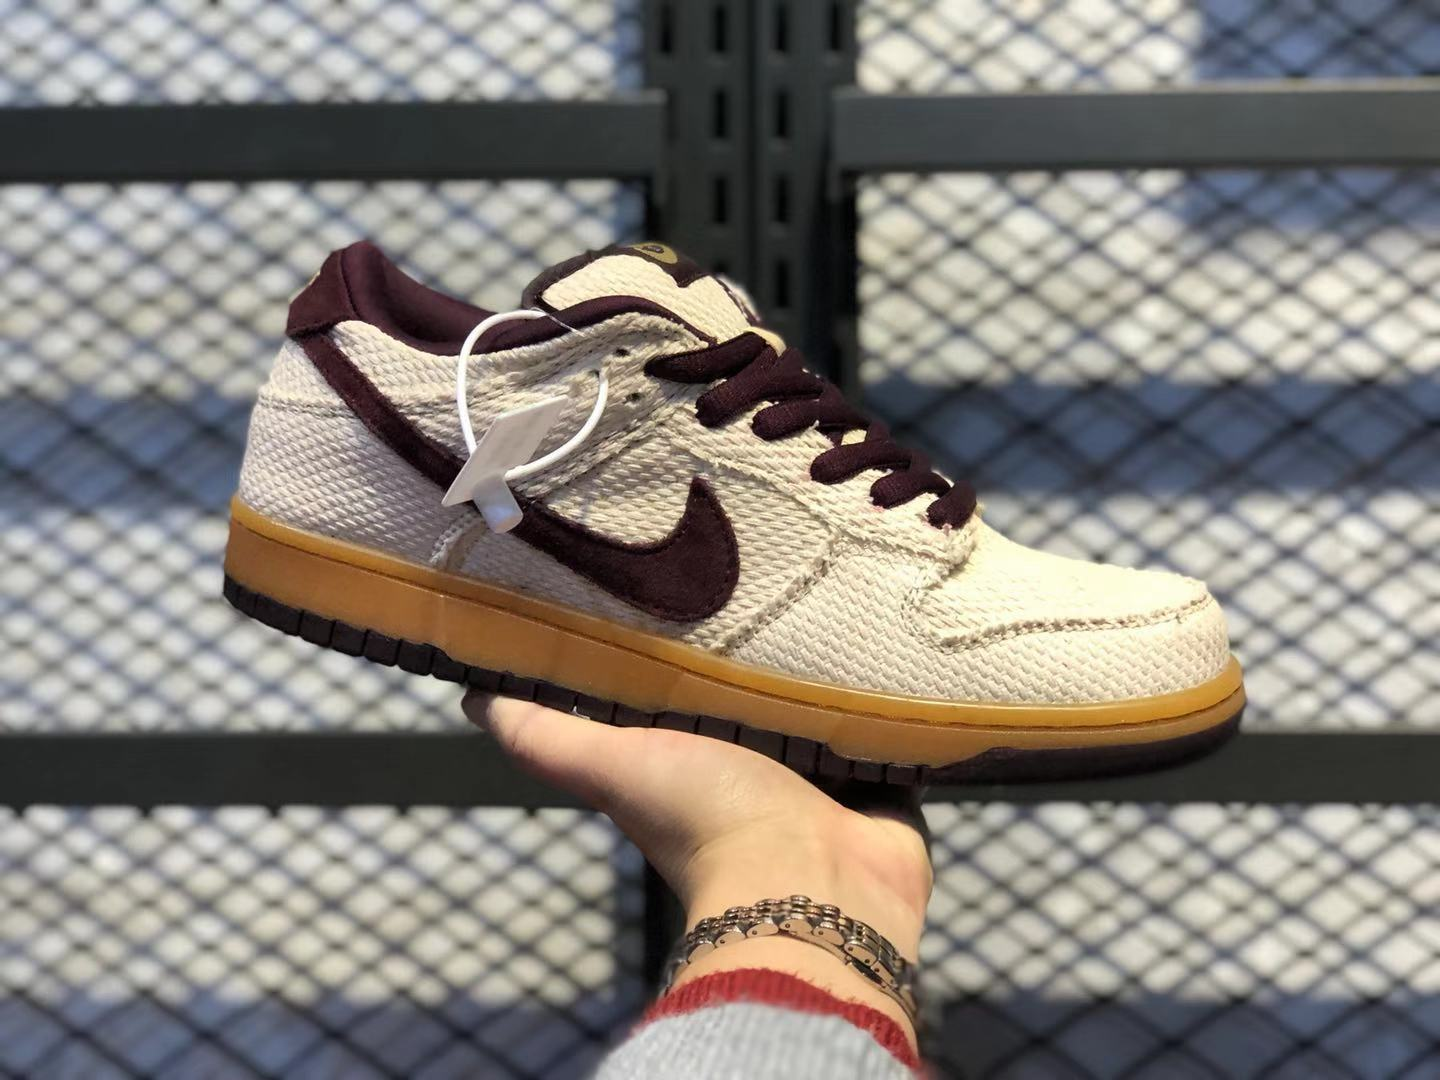 """Best Sell Nike SB Dunk Low """"Red Hemp"""" Jersey Gold/Red Mahogany 304292-761"""